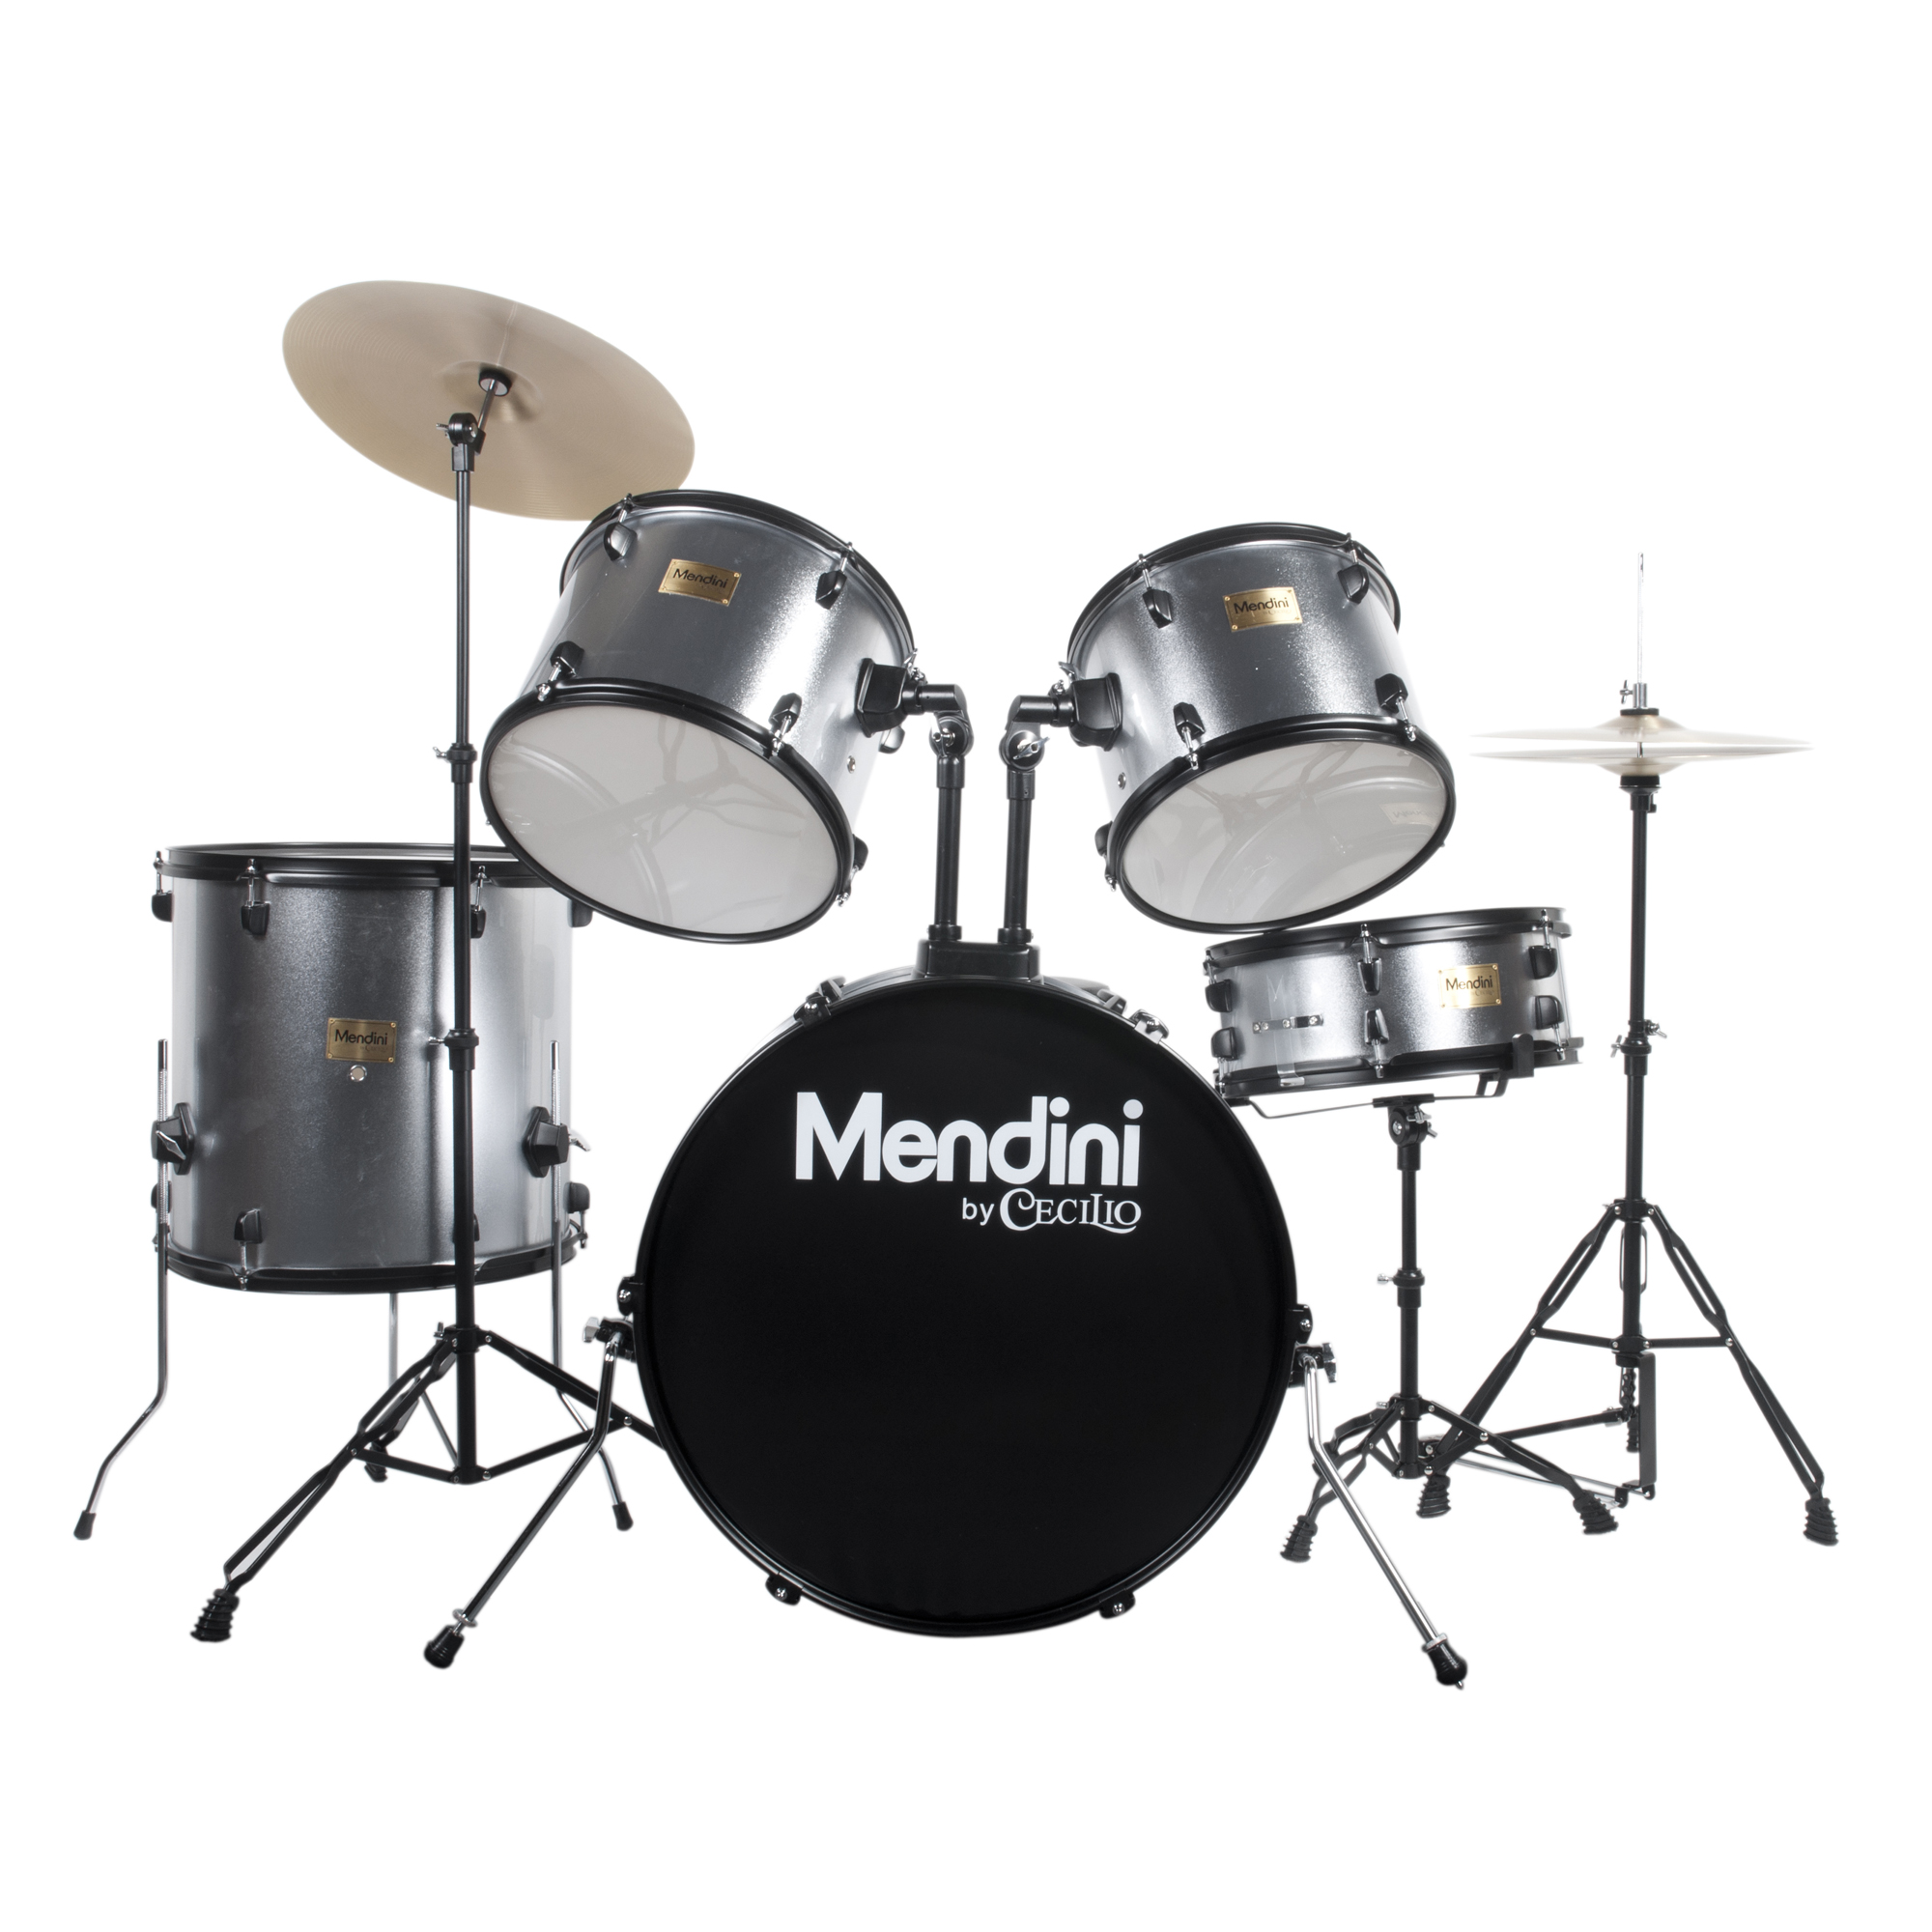 Mendini by Cecilio Complete Full Size 5-Piece Adult Drum Set w/ Cymbals Pedal Throne Sticks, Metallic Silver MDS80-SR